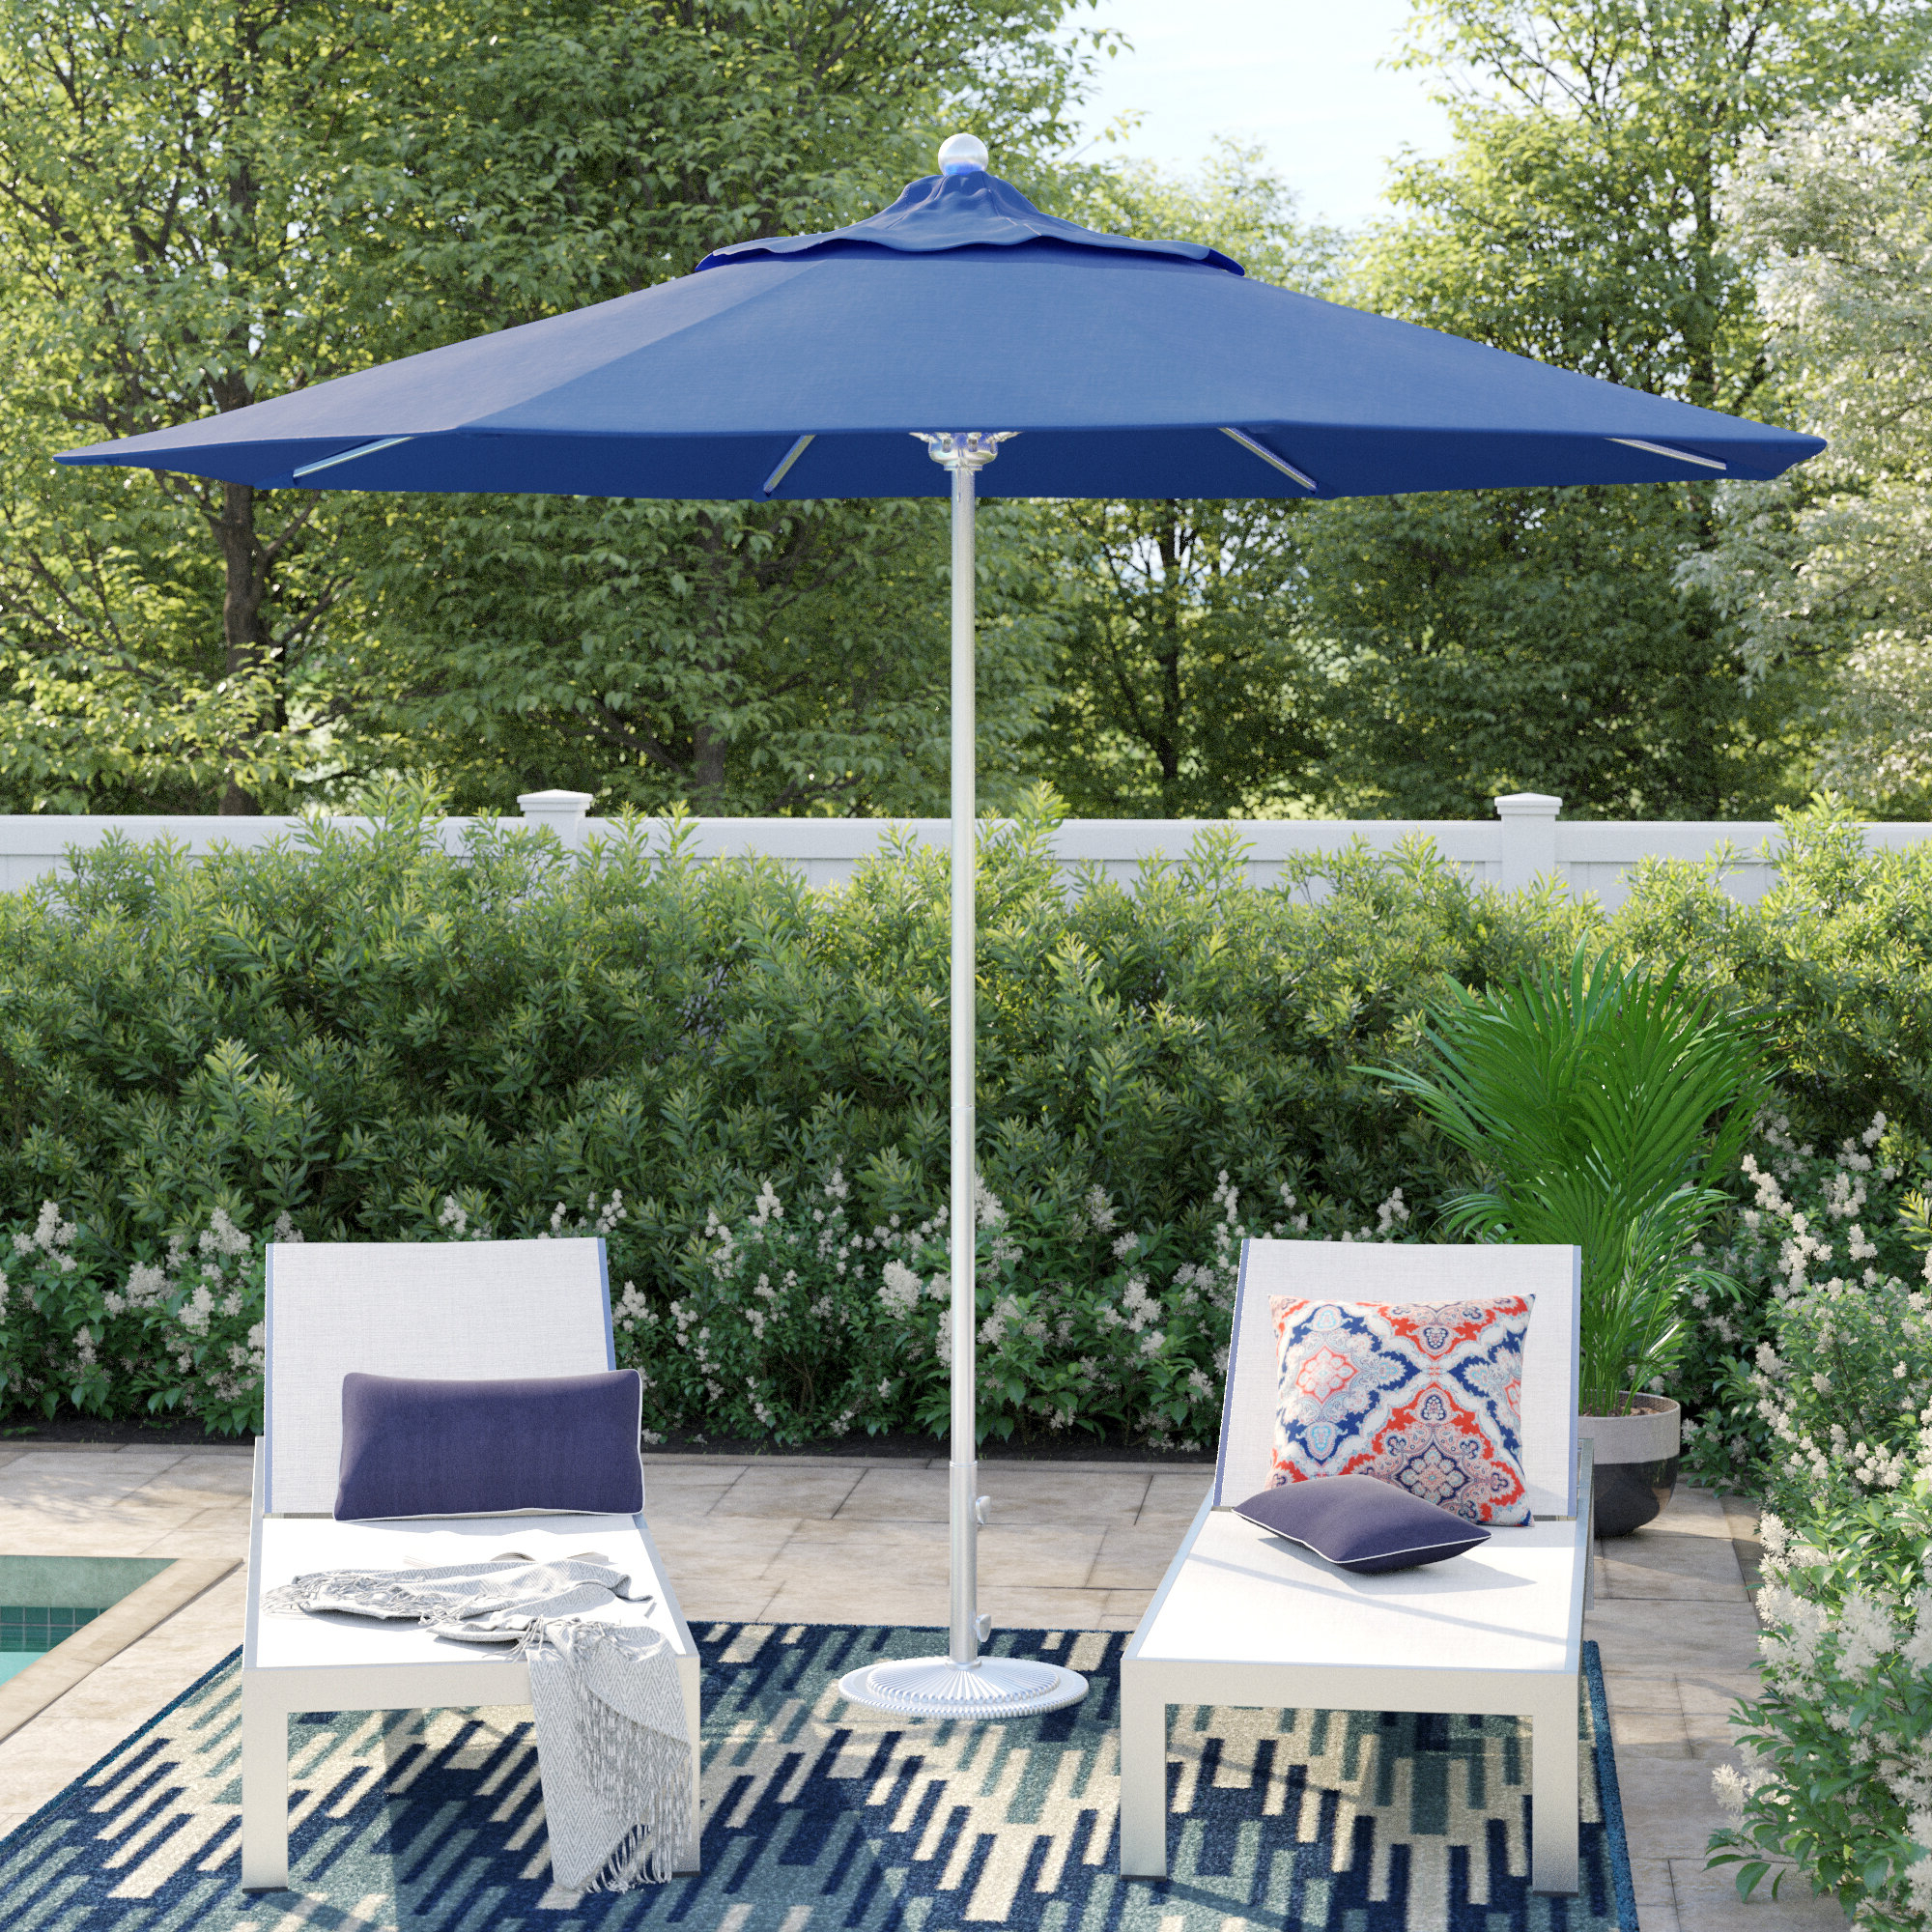 Caravelle 9' Market Umbrella With Regard To Most Up To Date Caravelle Market Sunbrella Umbrellas (View 5 of 20)